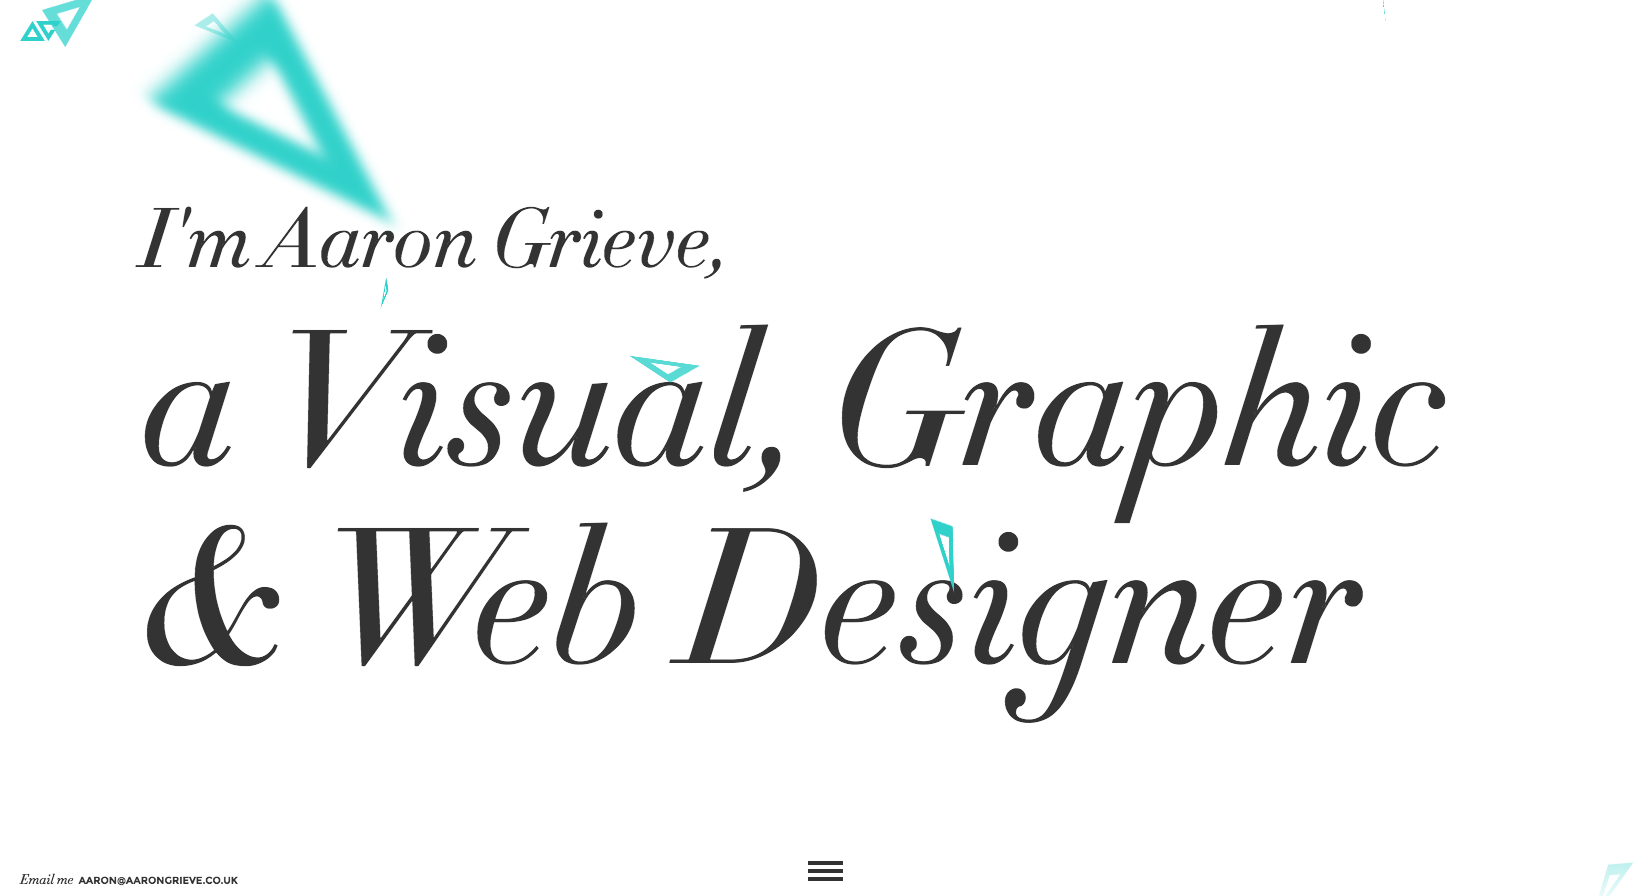 The homepage of Aaron Grieve's portfolio website